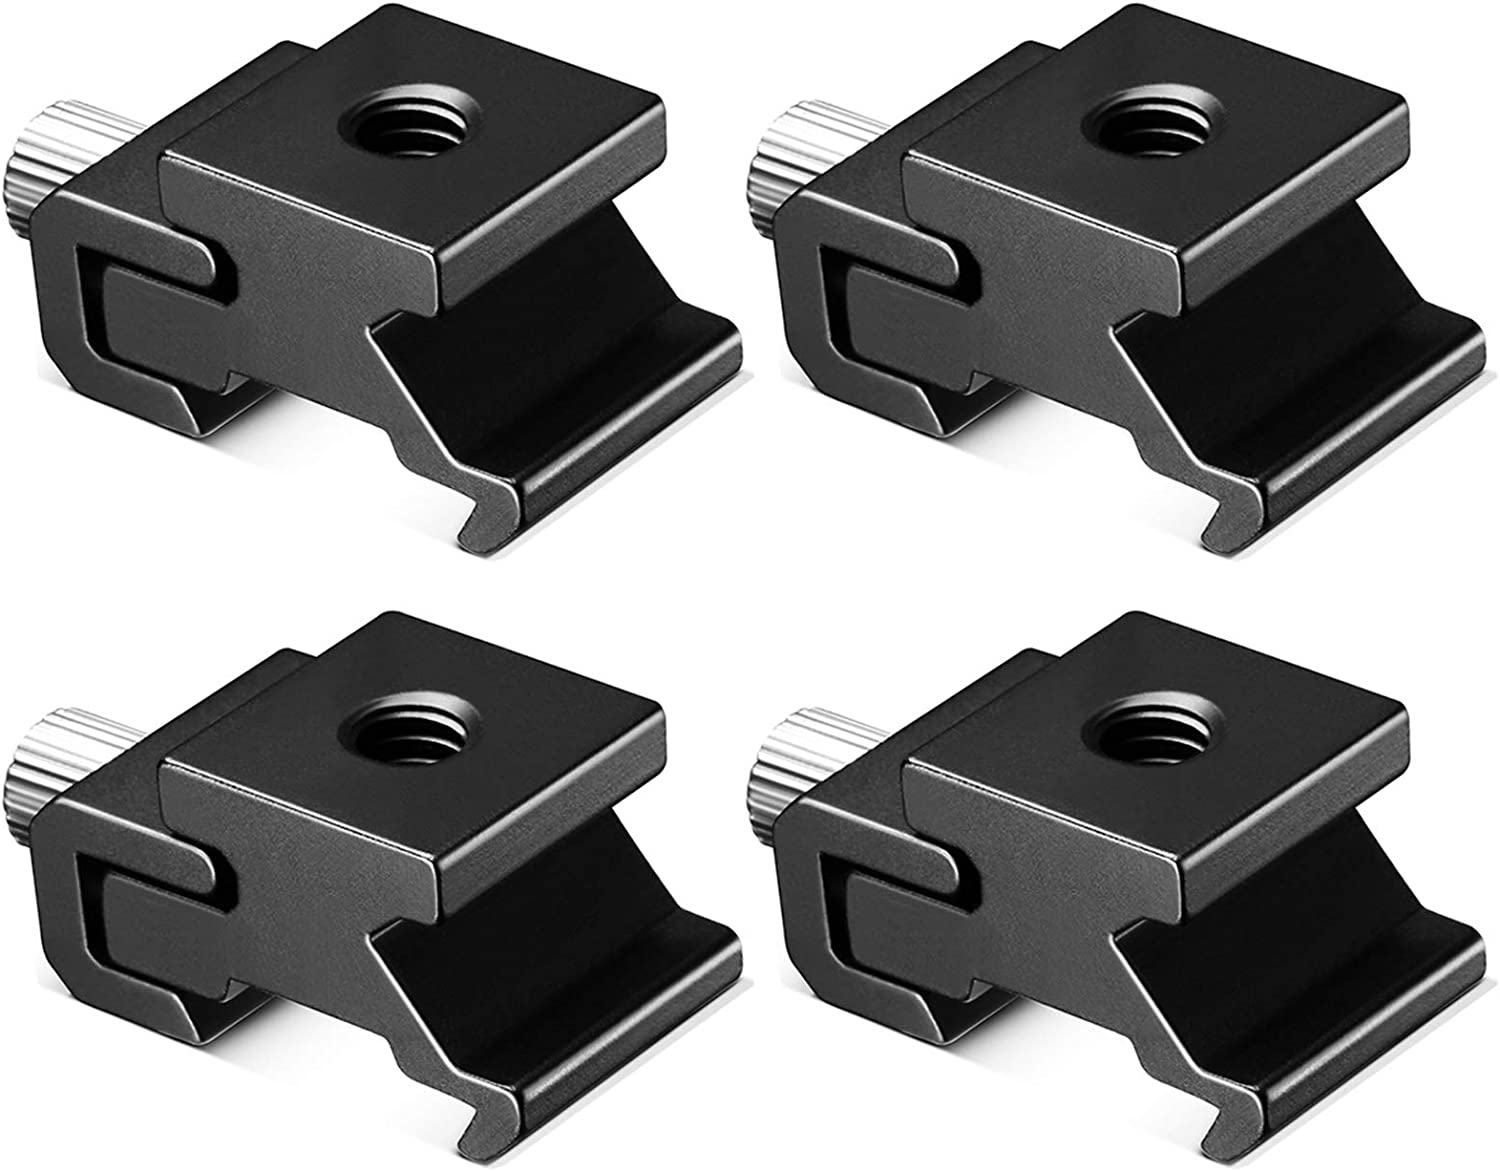 CAMVATE Cold Shoe Expension Adapter Install on 1//4-20 Female Thread Hole for Camera Accessory